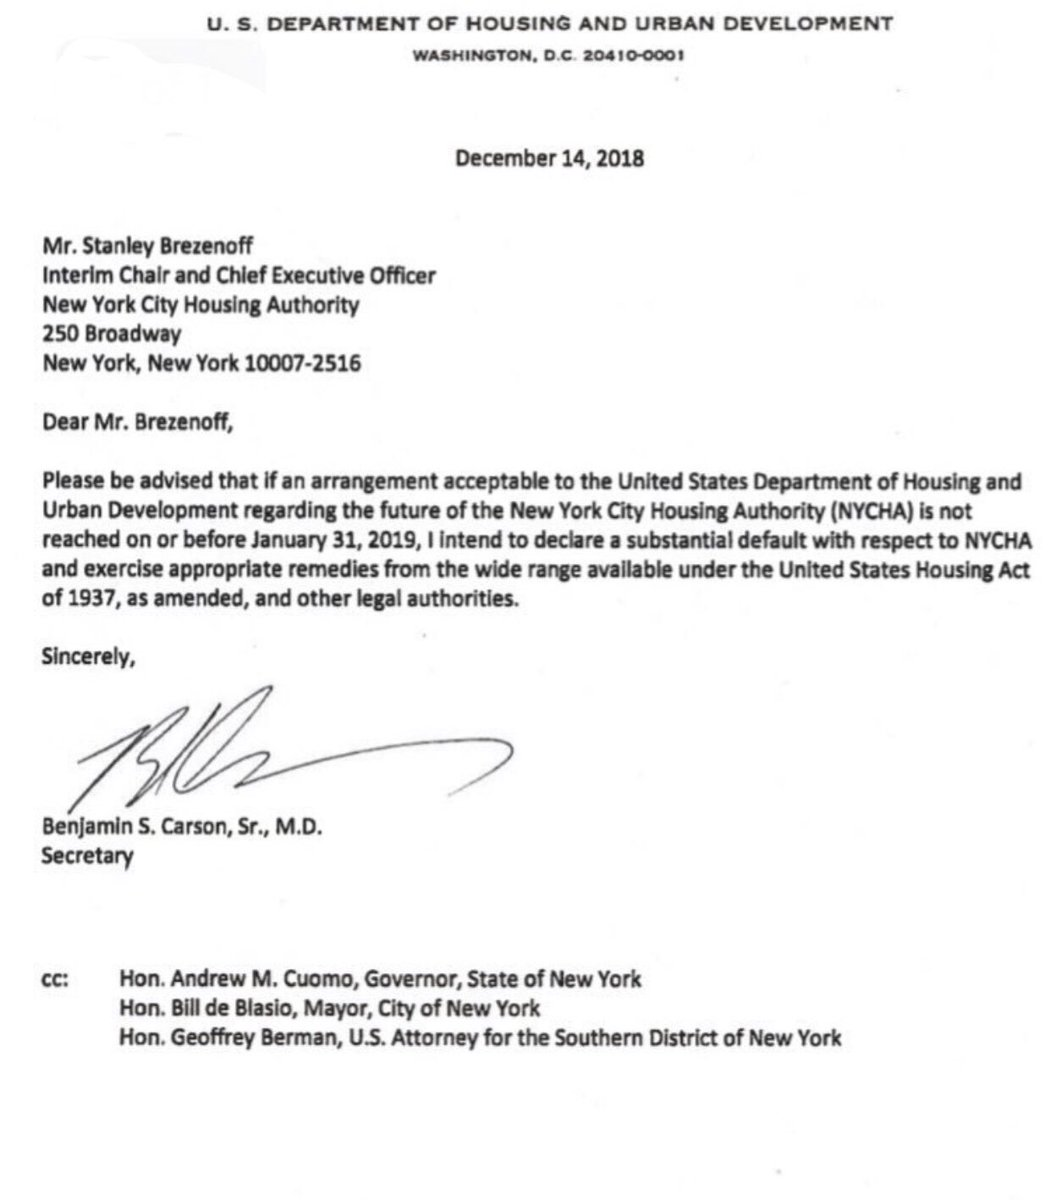 Delegation Letter | Lynne Patton Hud On Twitter Decrying A Receivership In A